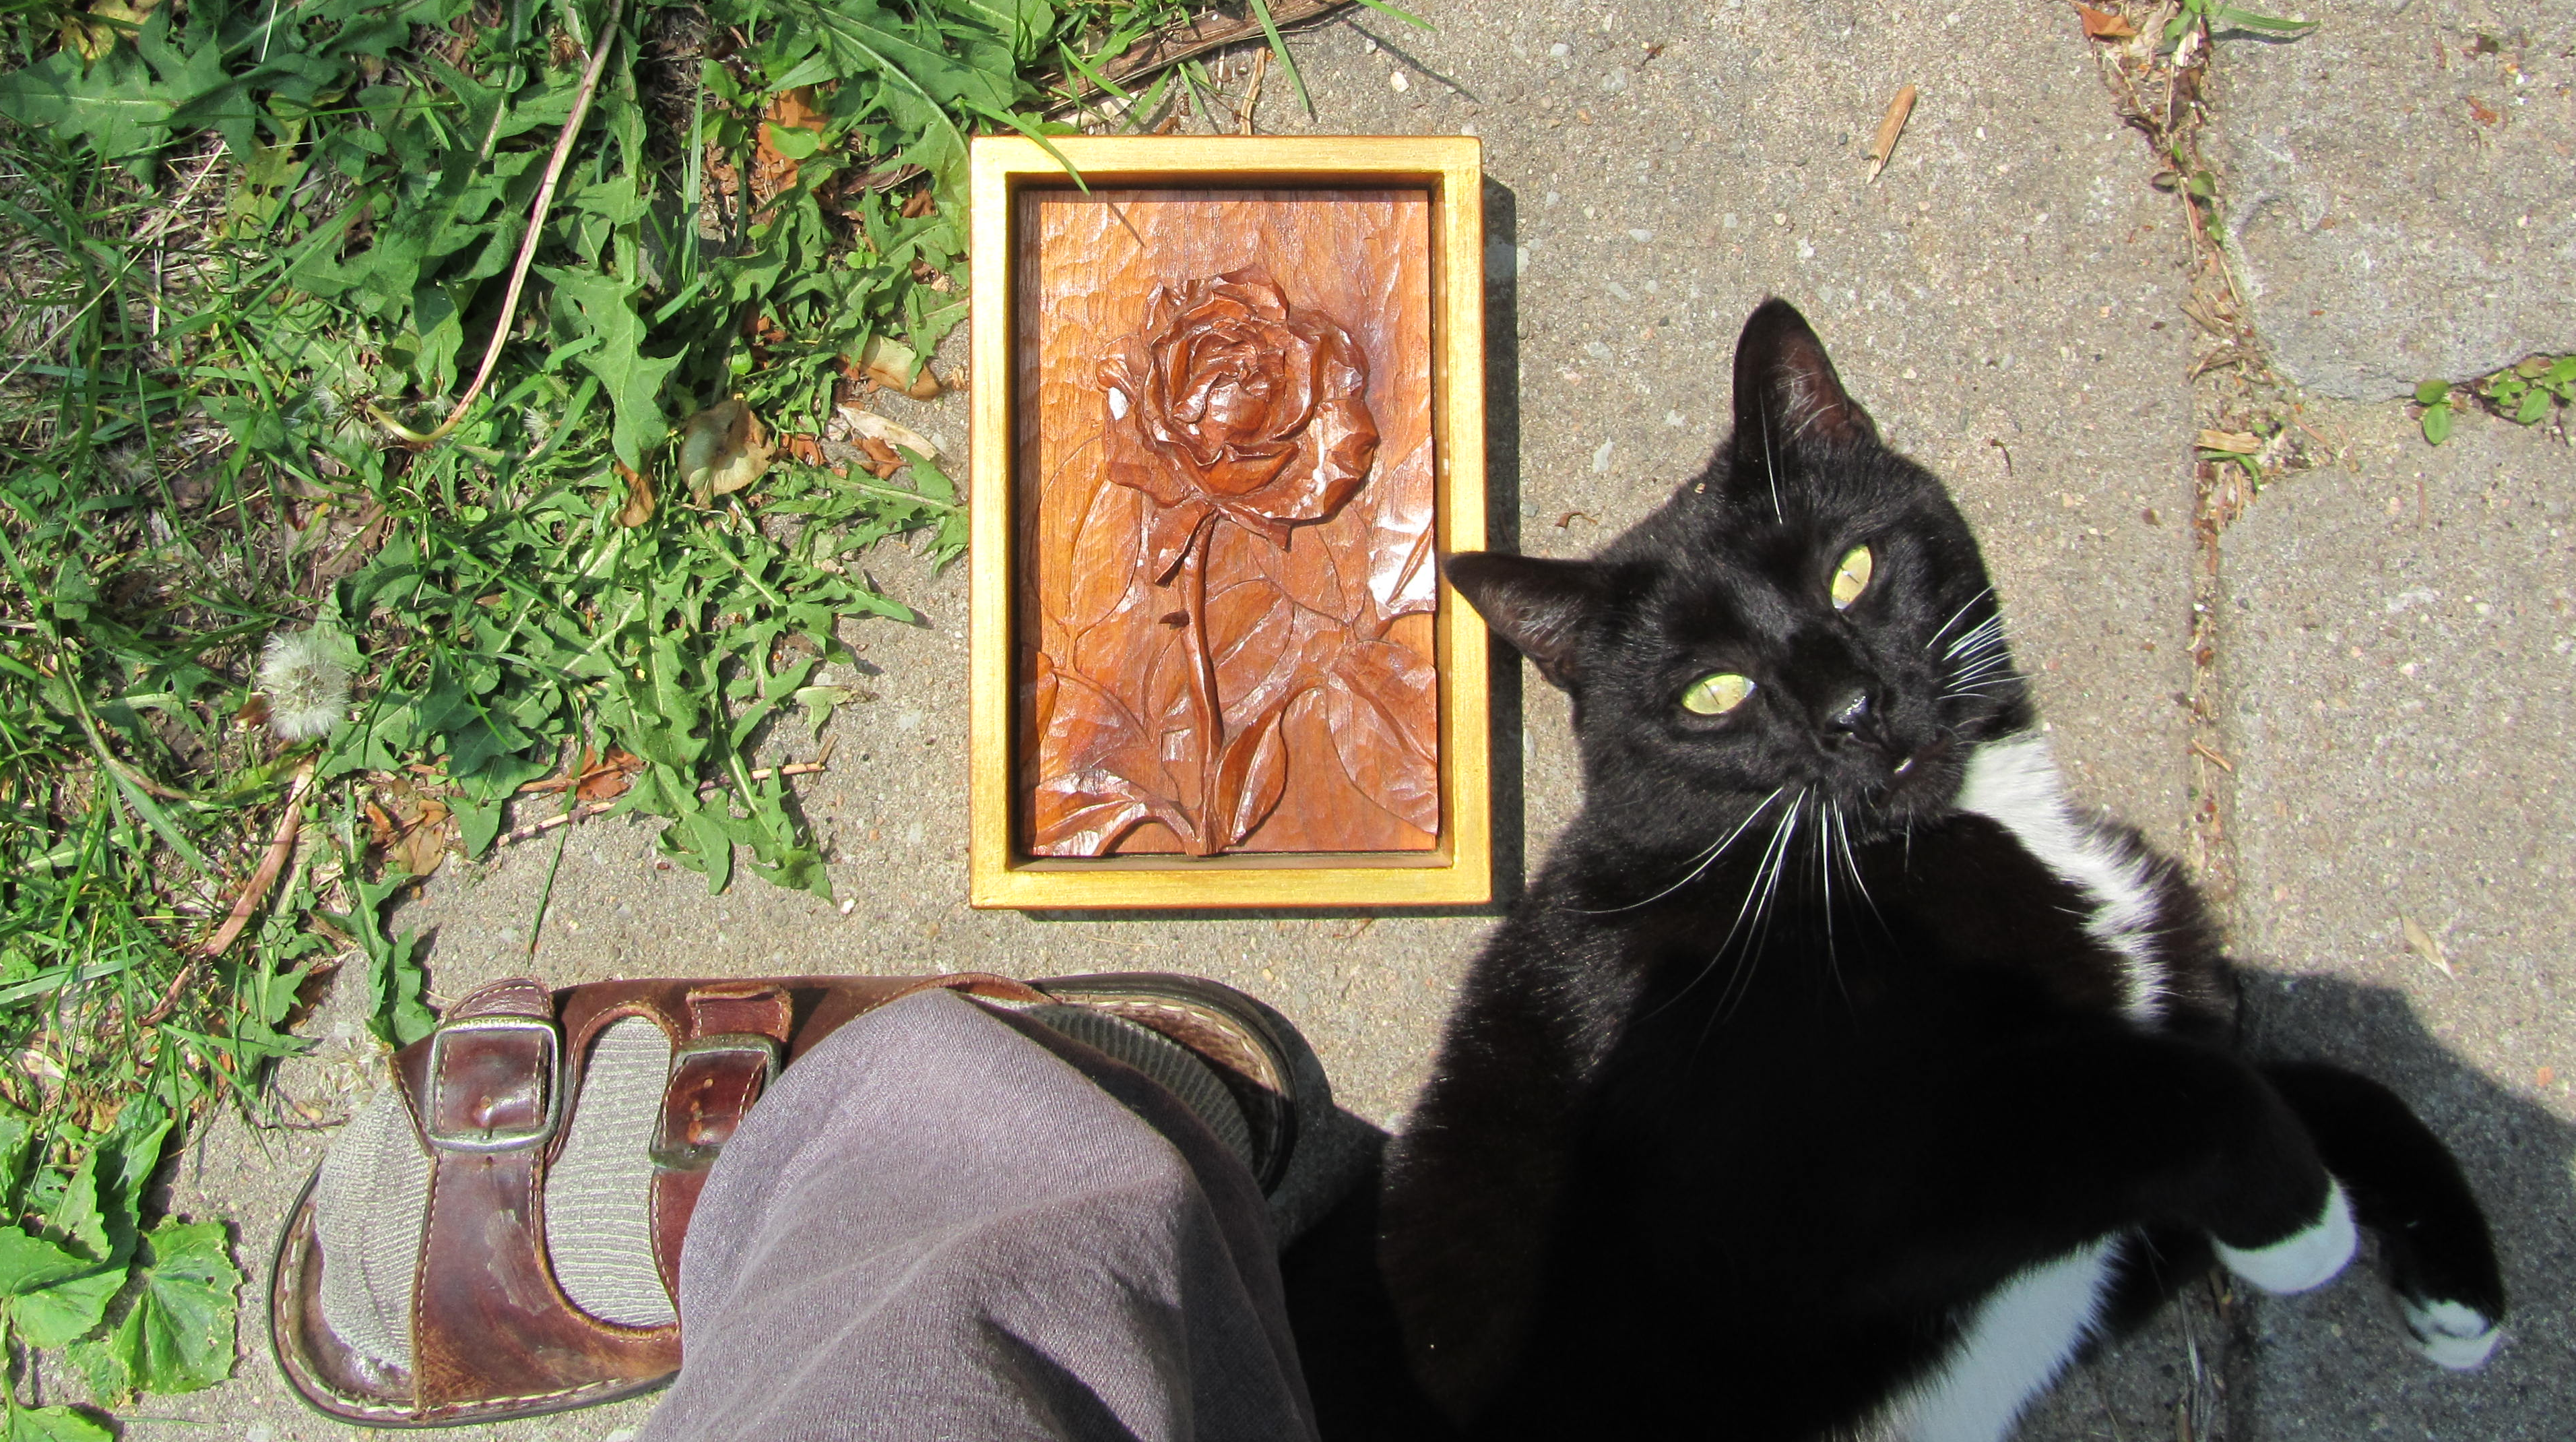 Relief carved rose in black walnut with an inset ebony thorn, by Theo Fadel. The house cat rampant is Roger Bacon.